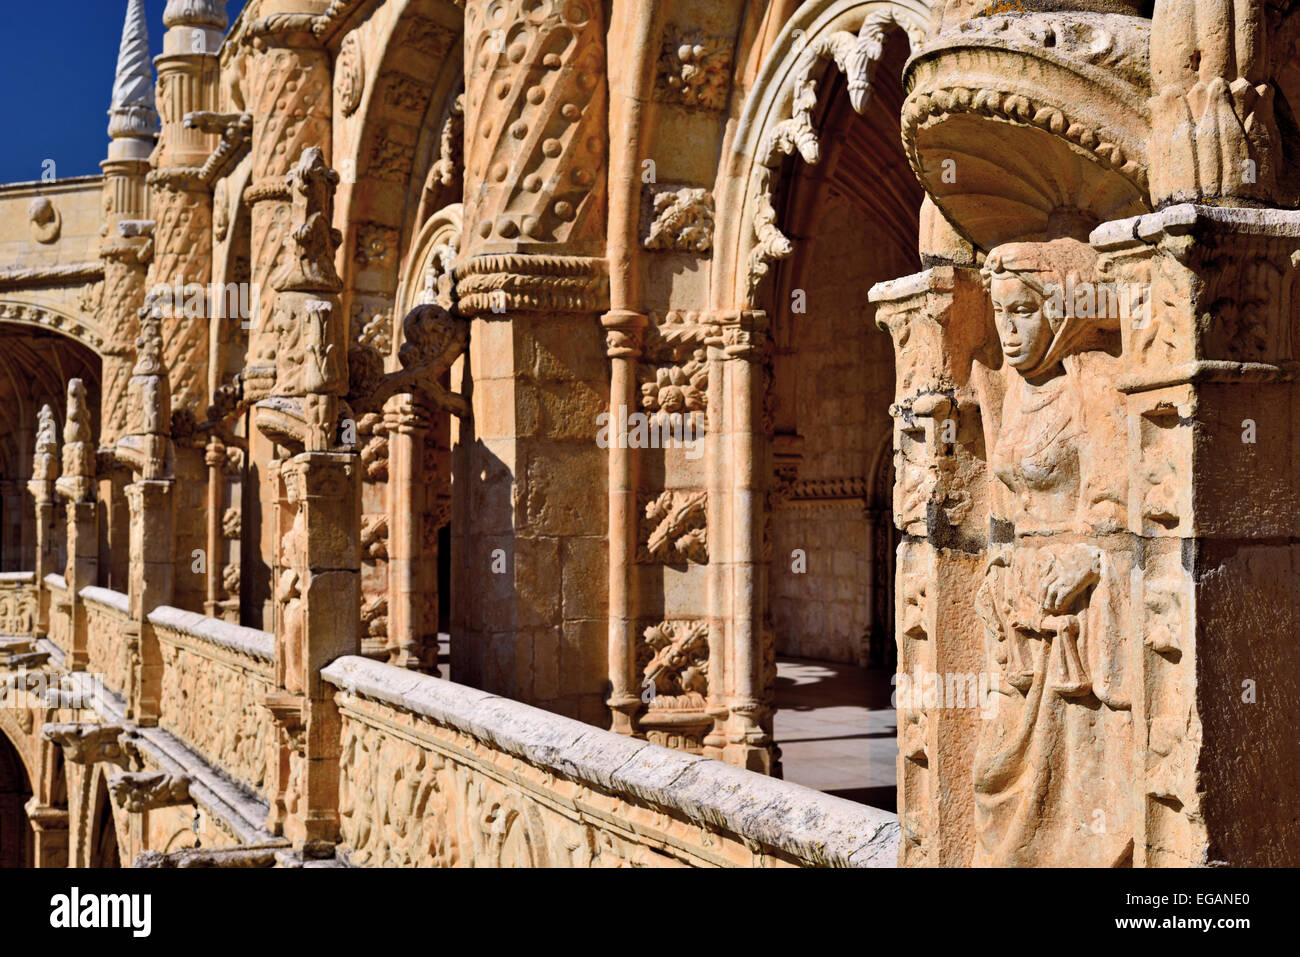 Portugal, Lisbon: Ornamented  architecture in the Cloister of World Heritage monastery Mosterio dos Jeronimos in - Stock Image